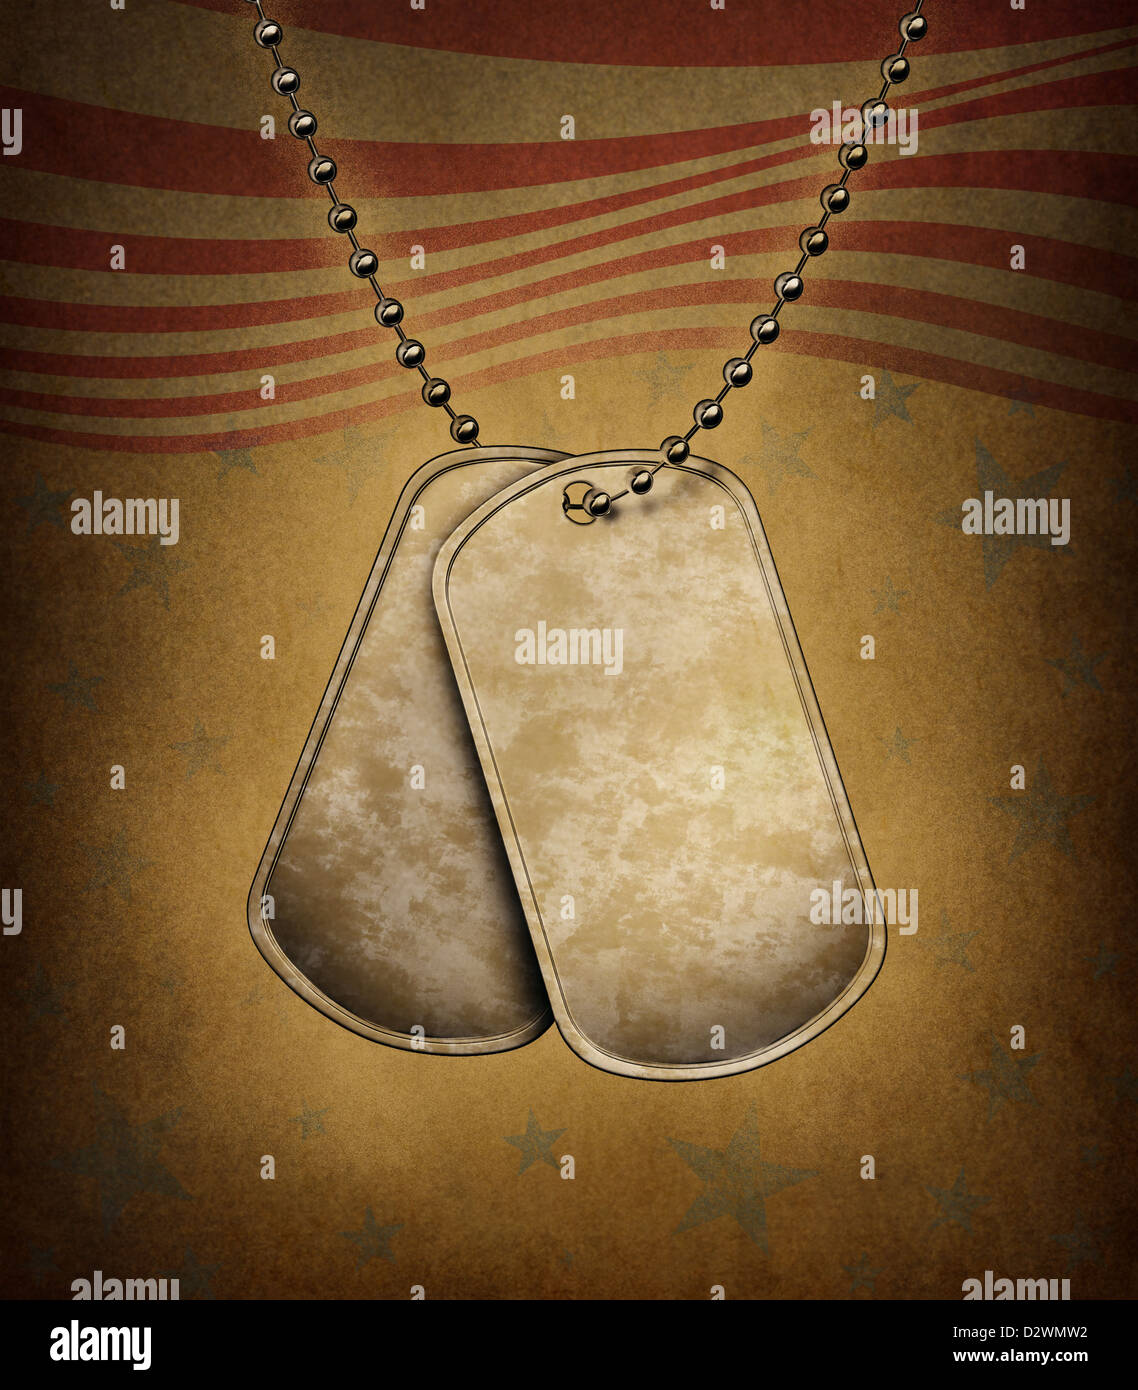 Dog Tags on an old grunge texture with the American flag theme made of blank metal with beaded necklace as a symbol - Stock Image